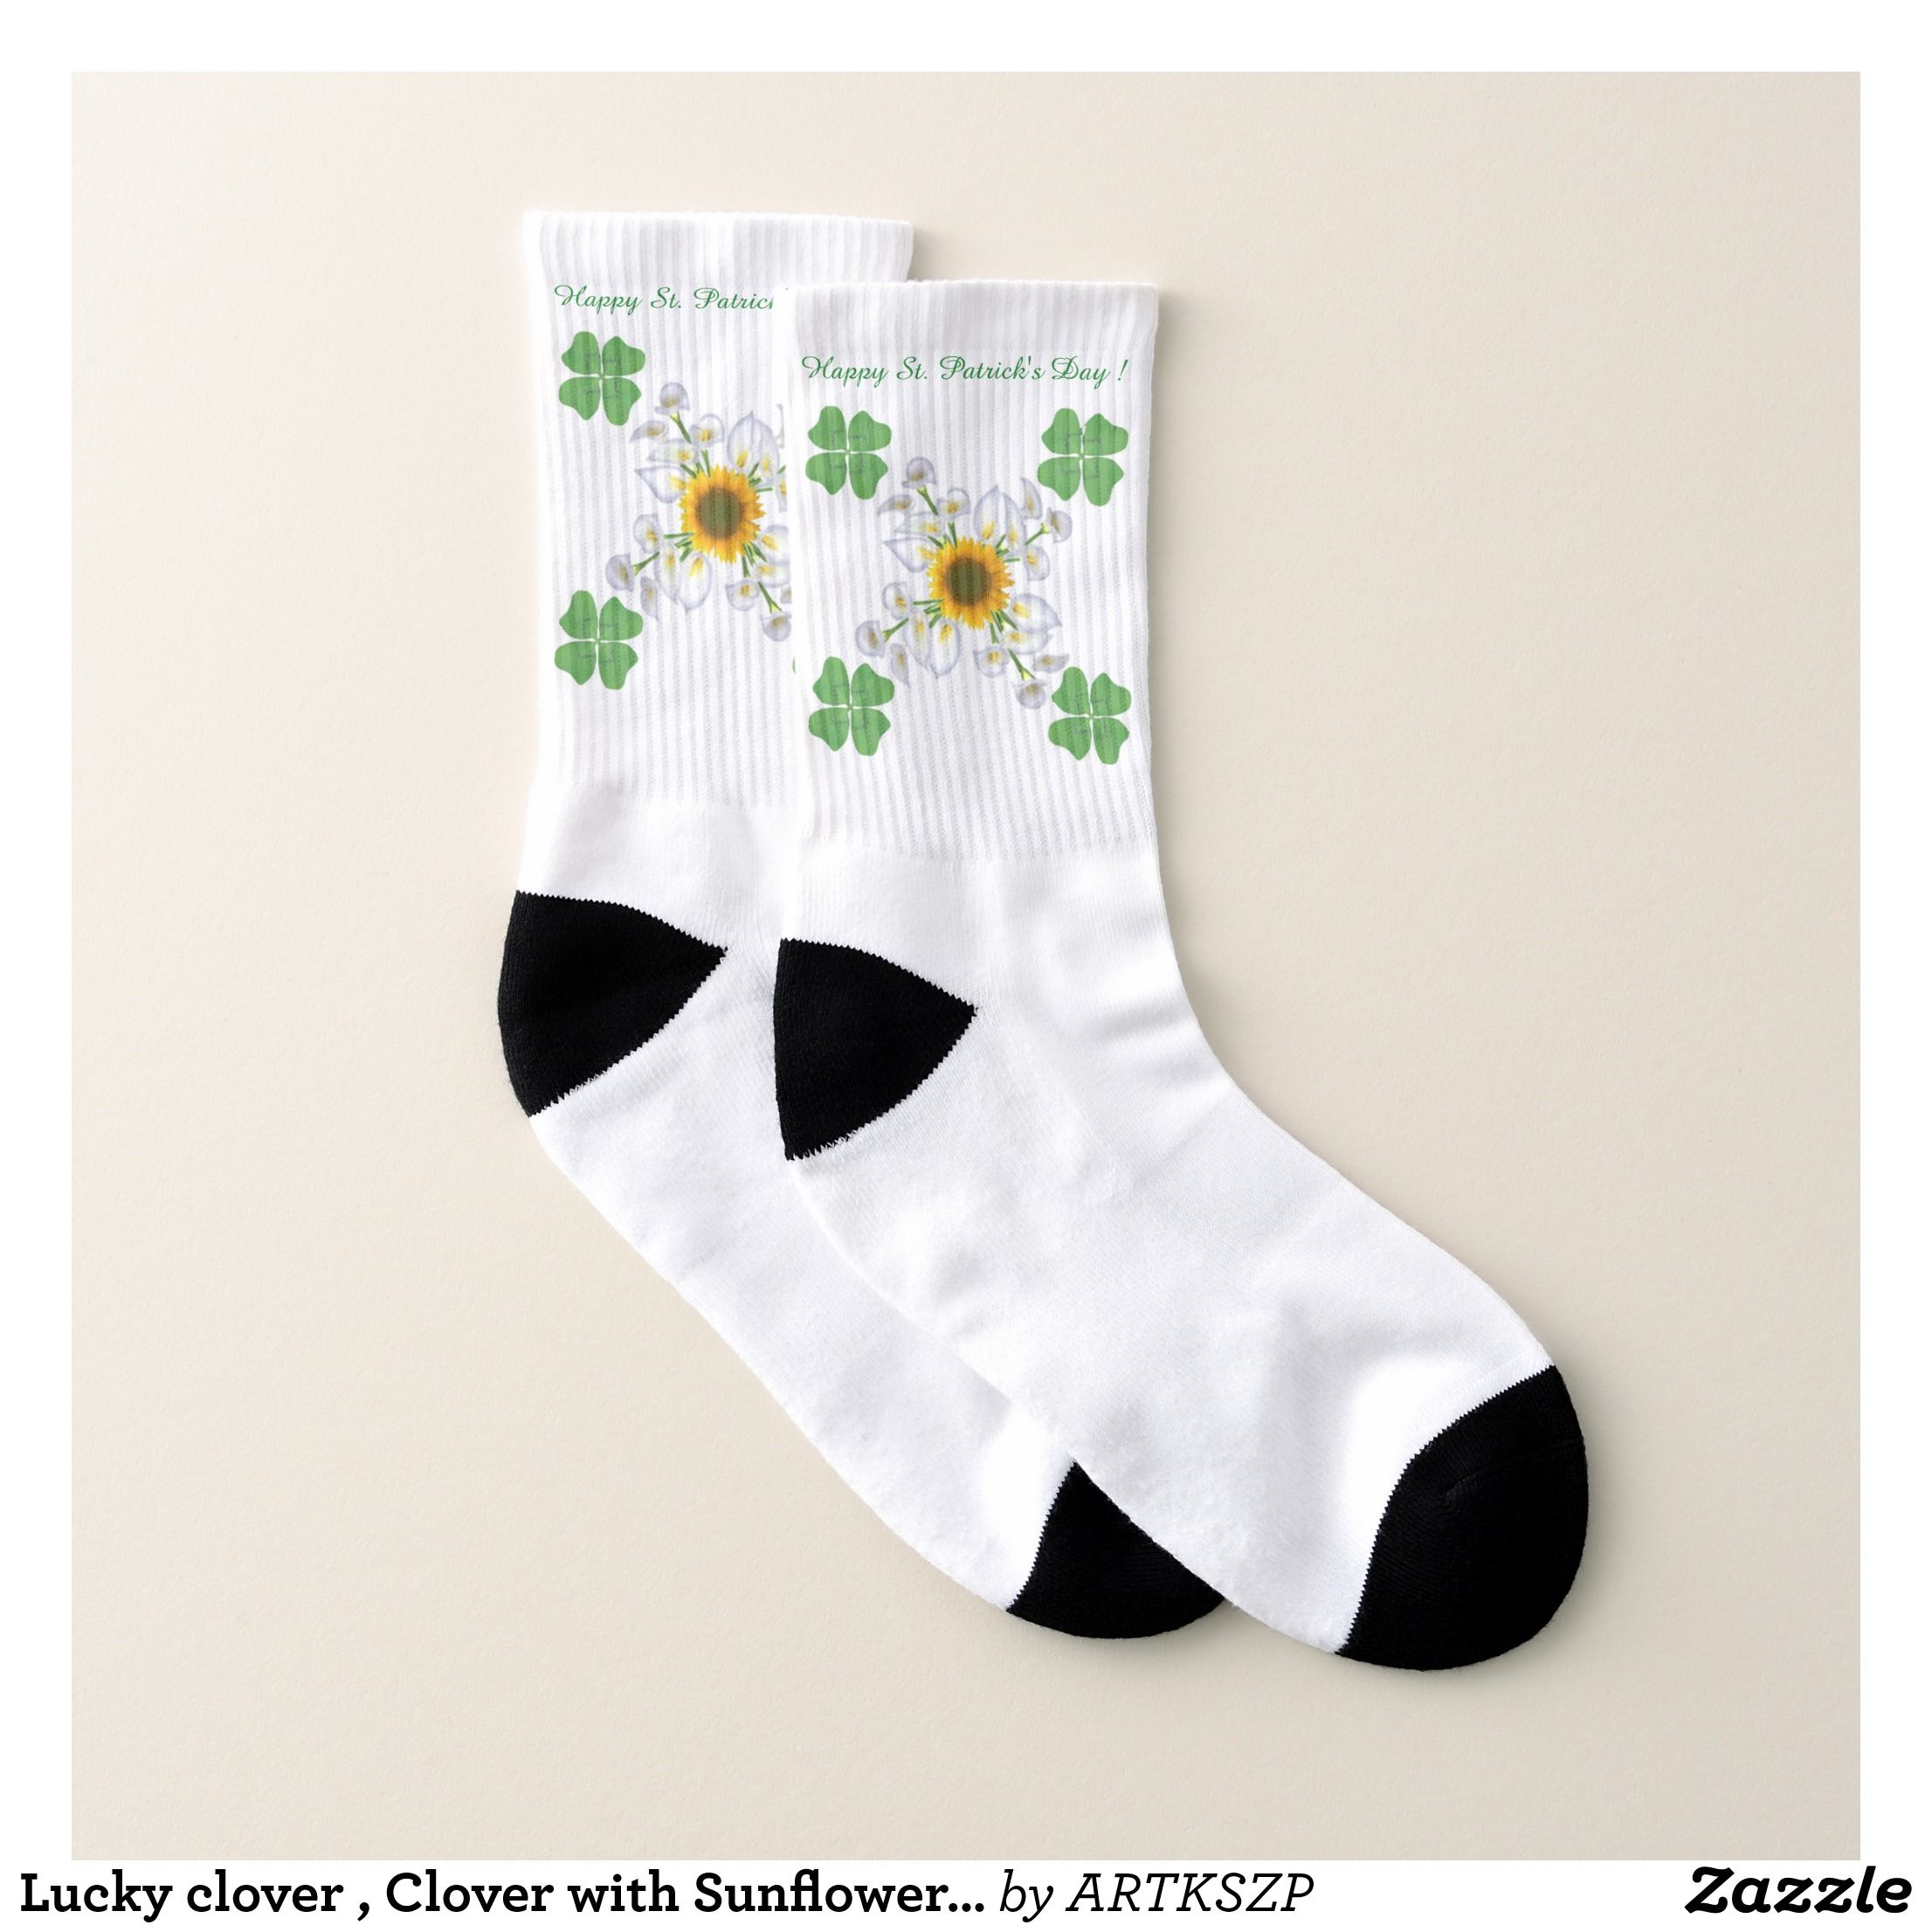 Lucky clover clover with sunflower calla lily socks printed unisex